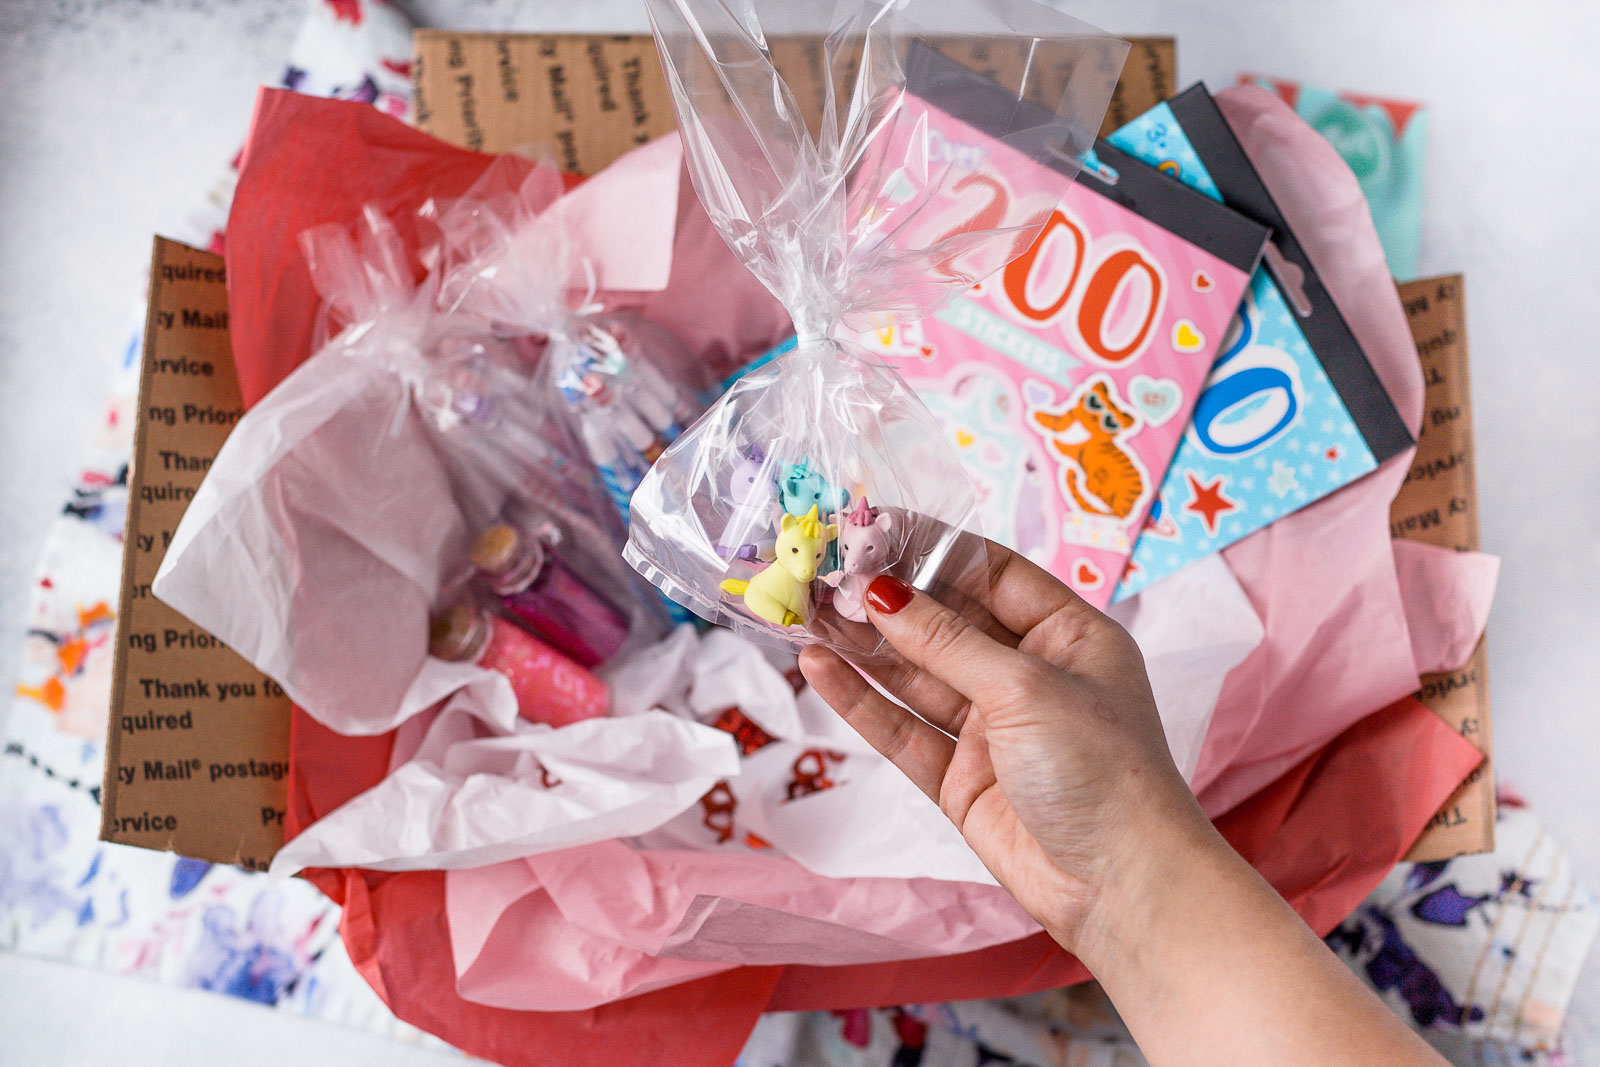 how to put together a valentine's day care package for a niece & nephew. tips & tricks for aunties to spoil their favorite little ones, even from a distance